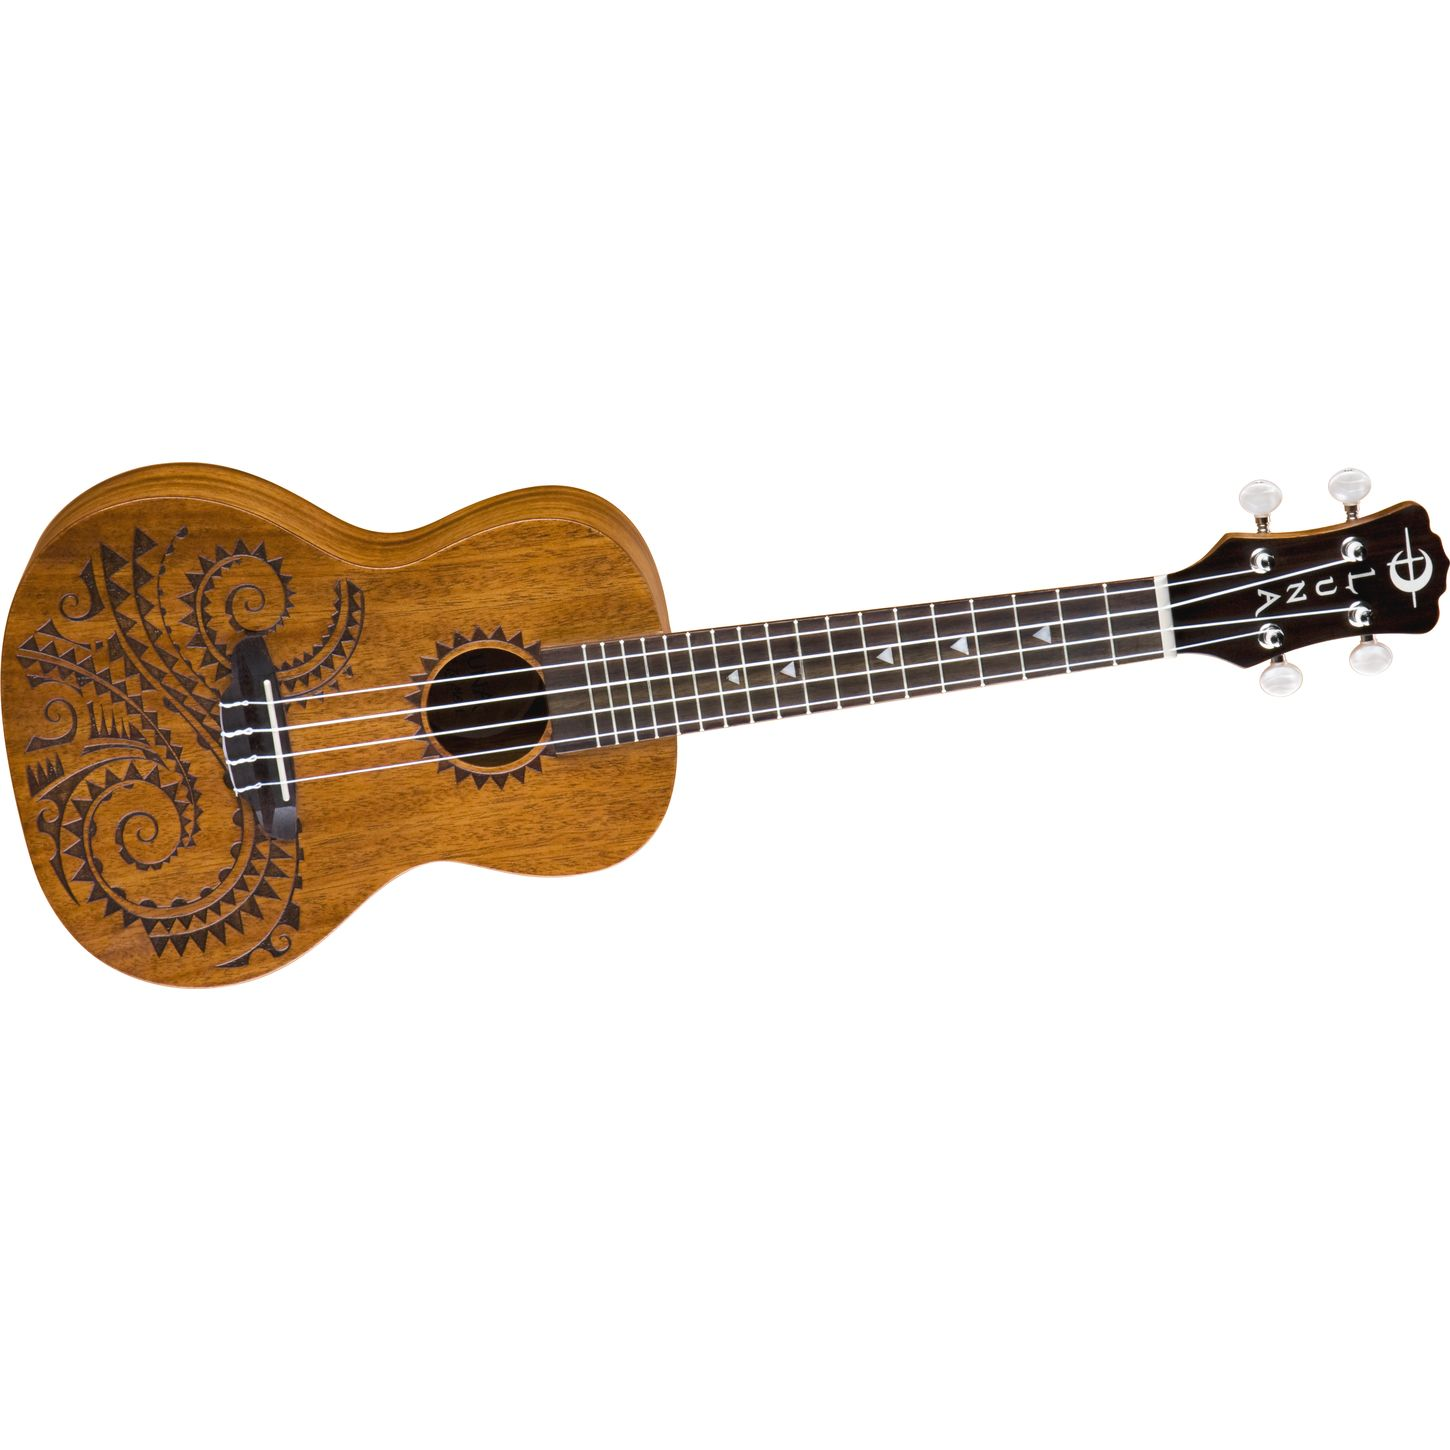 Luna Guitars Tattoo Concert Ukulele